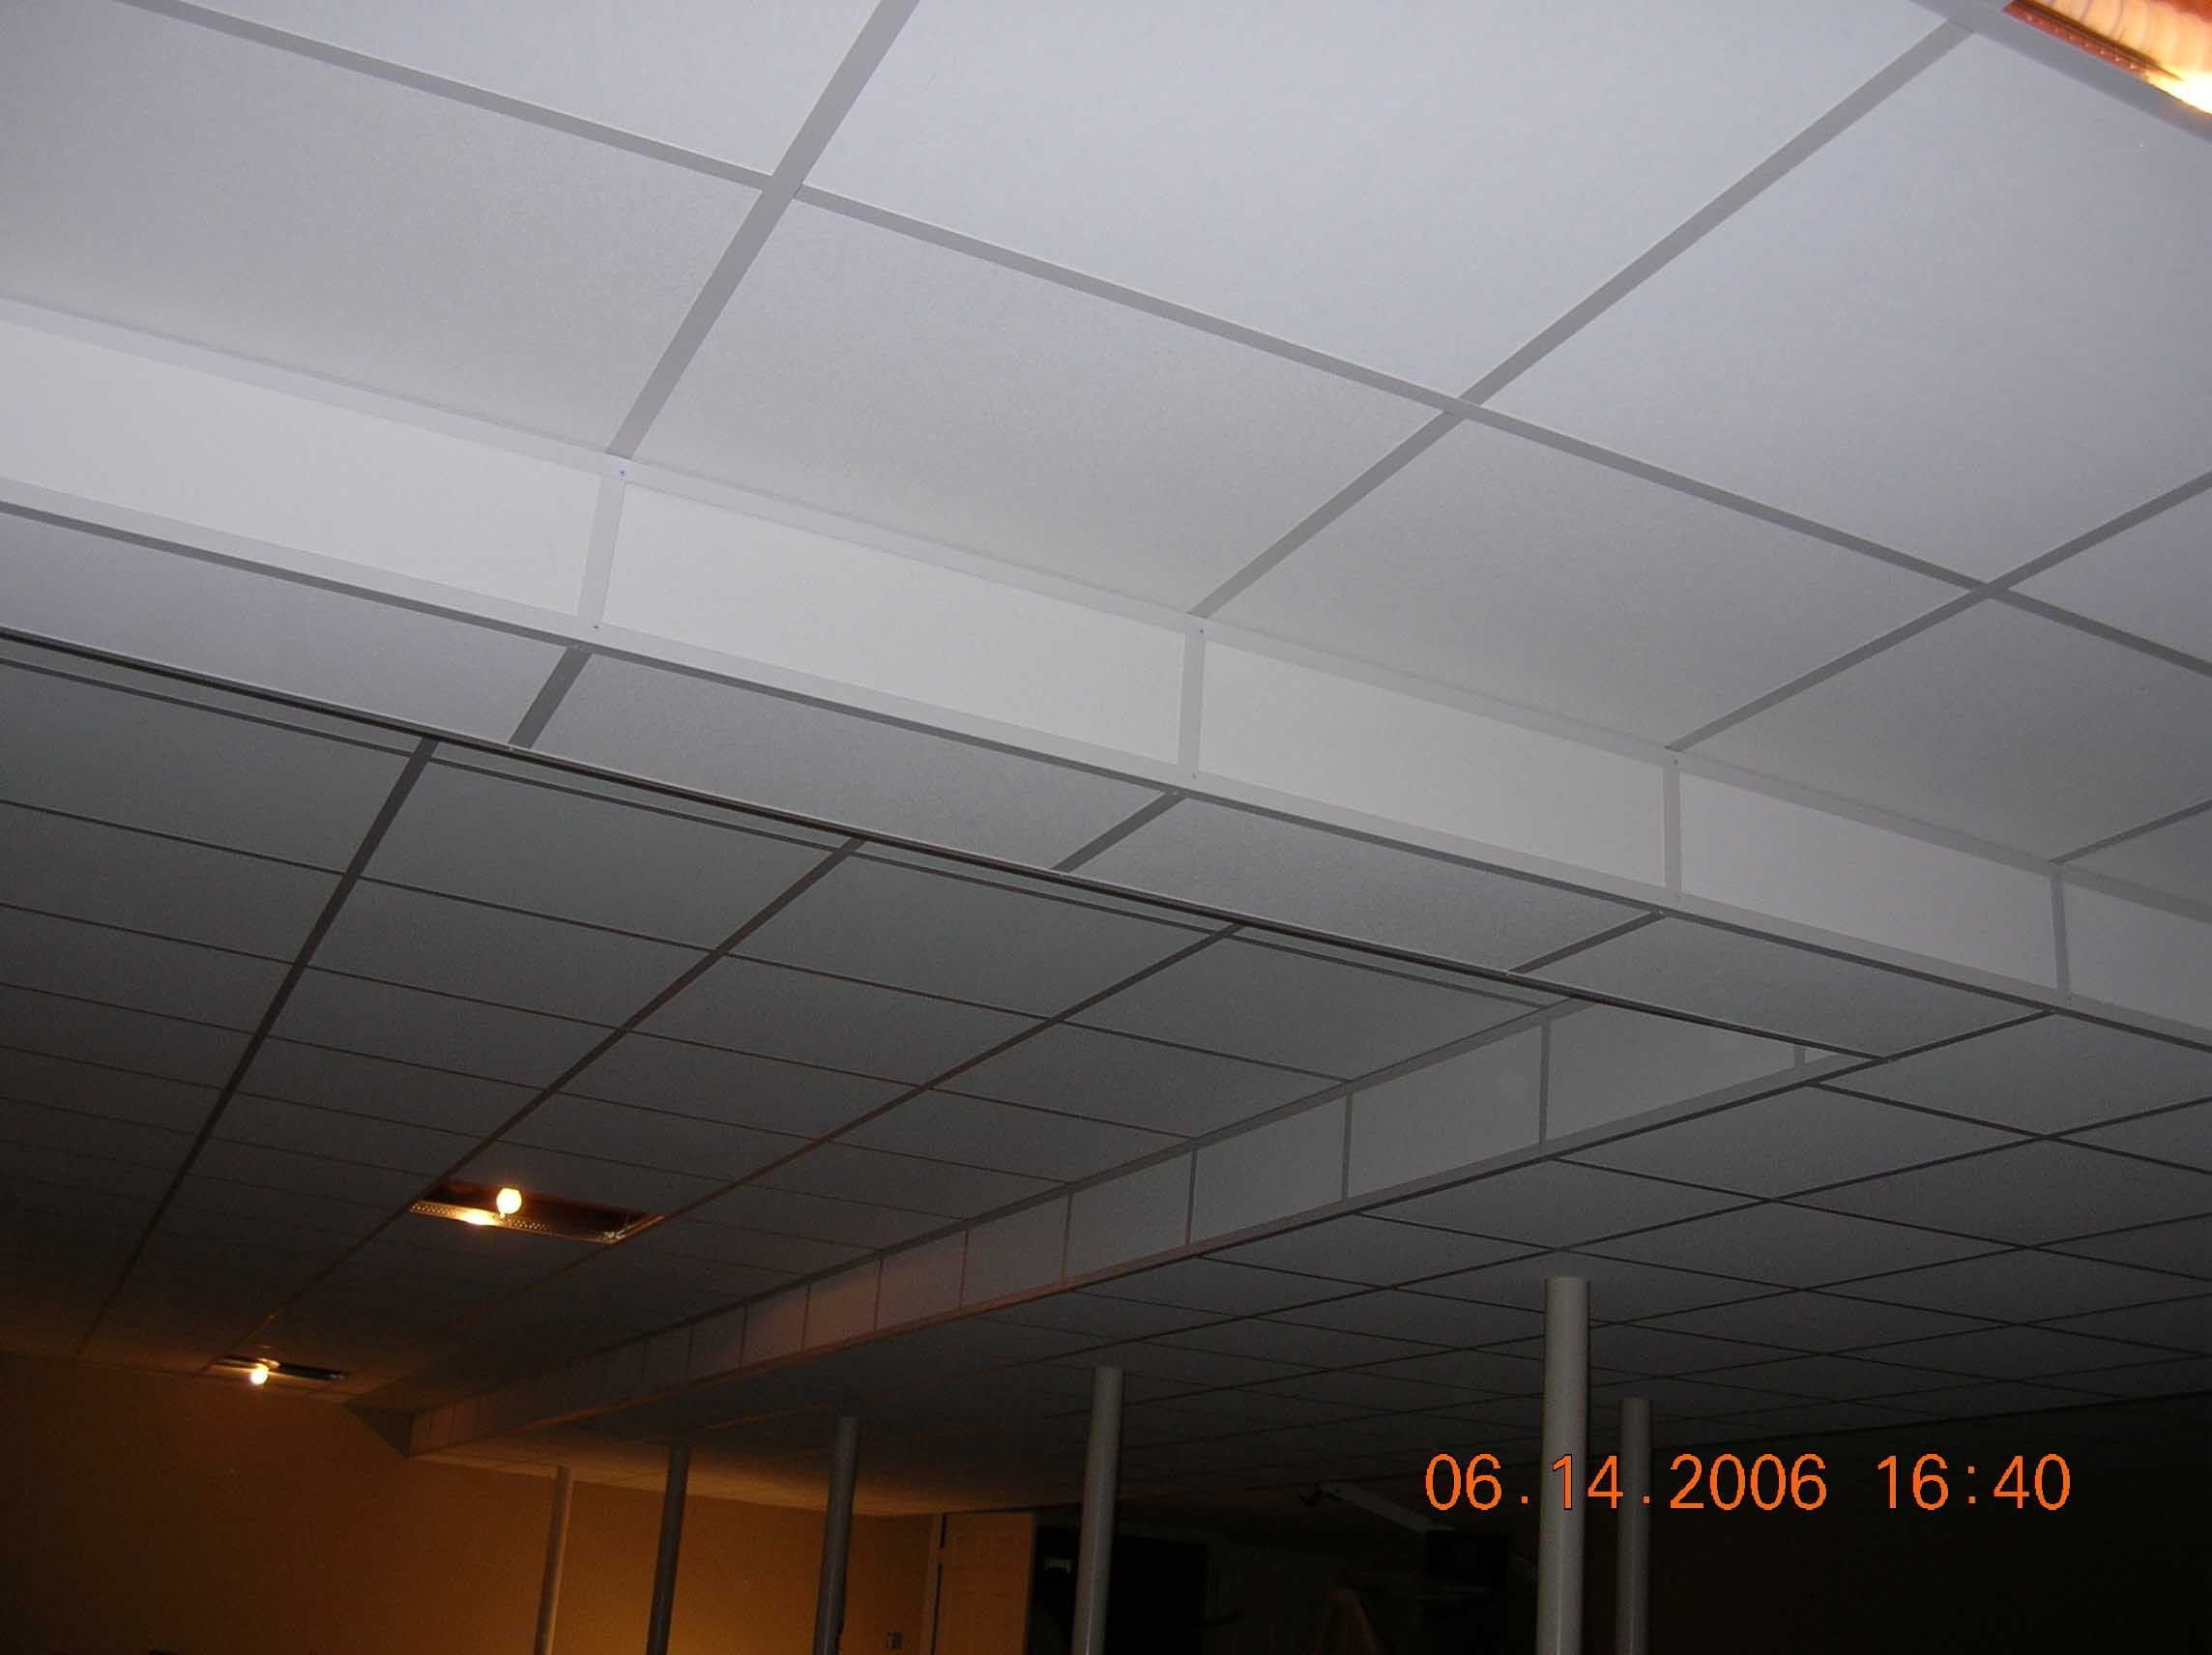 diy home theater and room panels reviews accessories down tiles ceiling ceilings for drop star avs items discussions forum